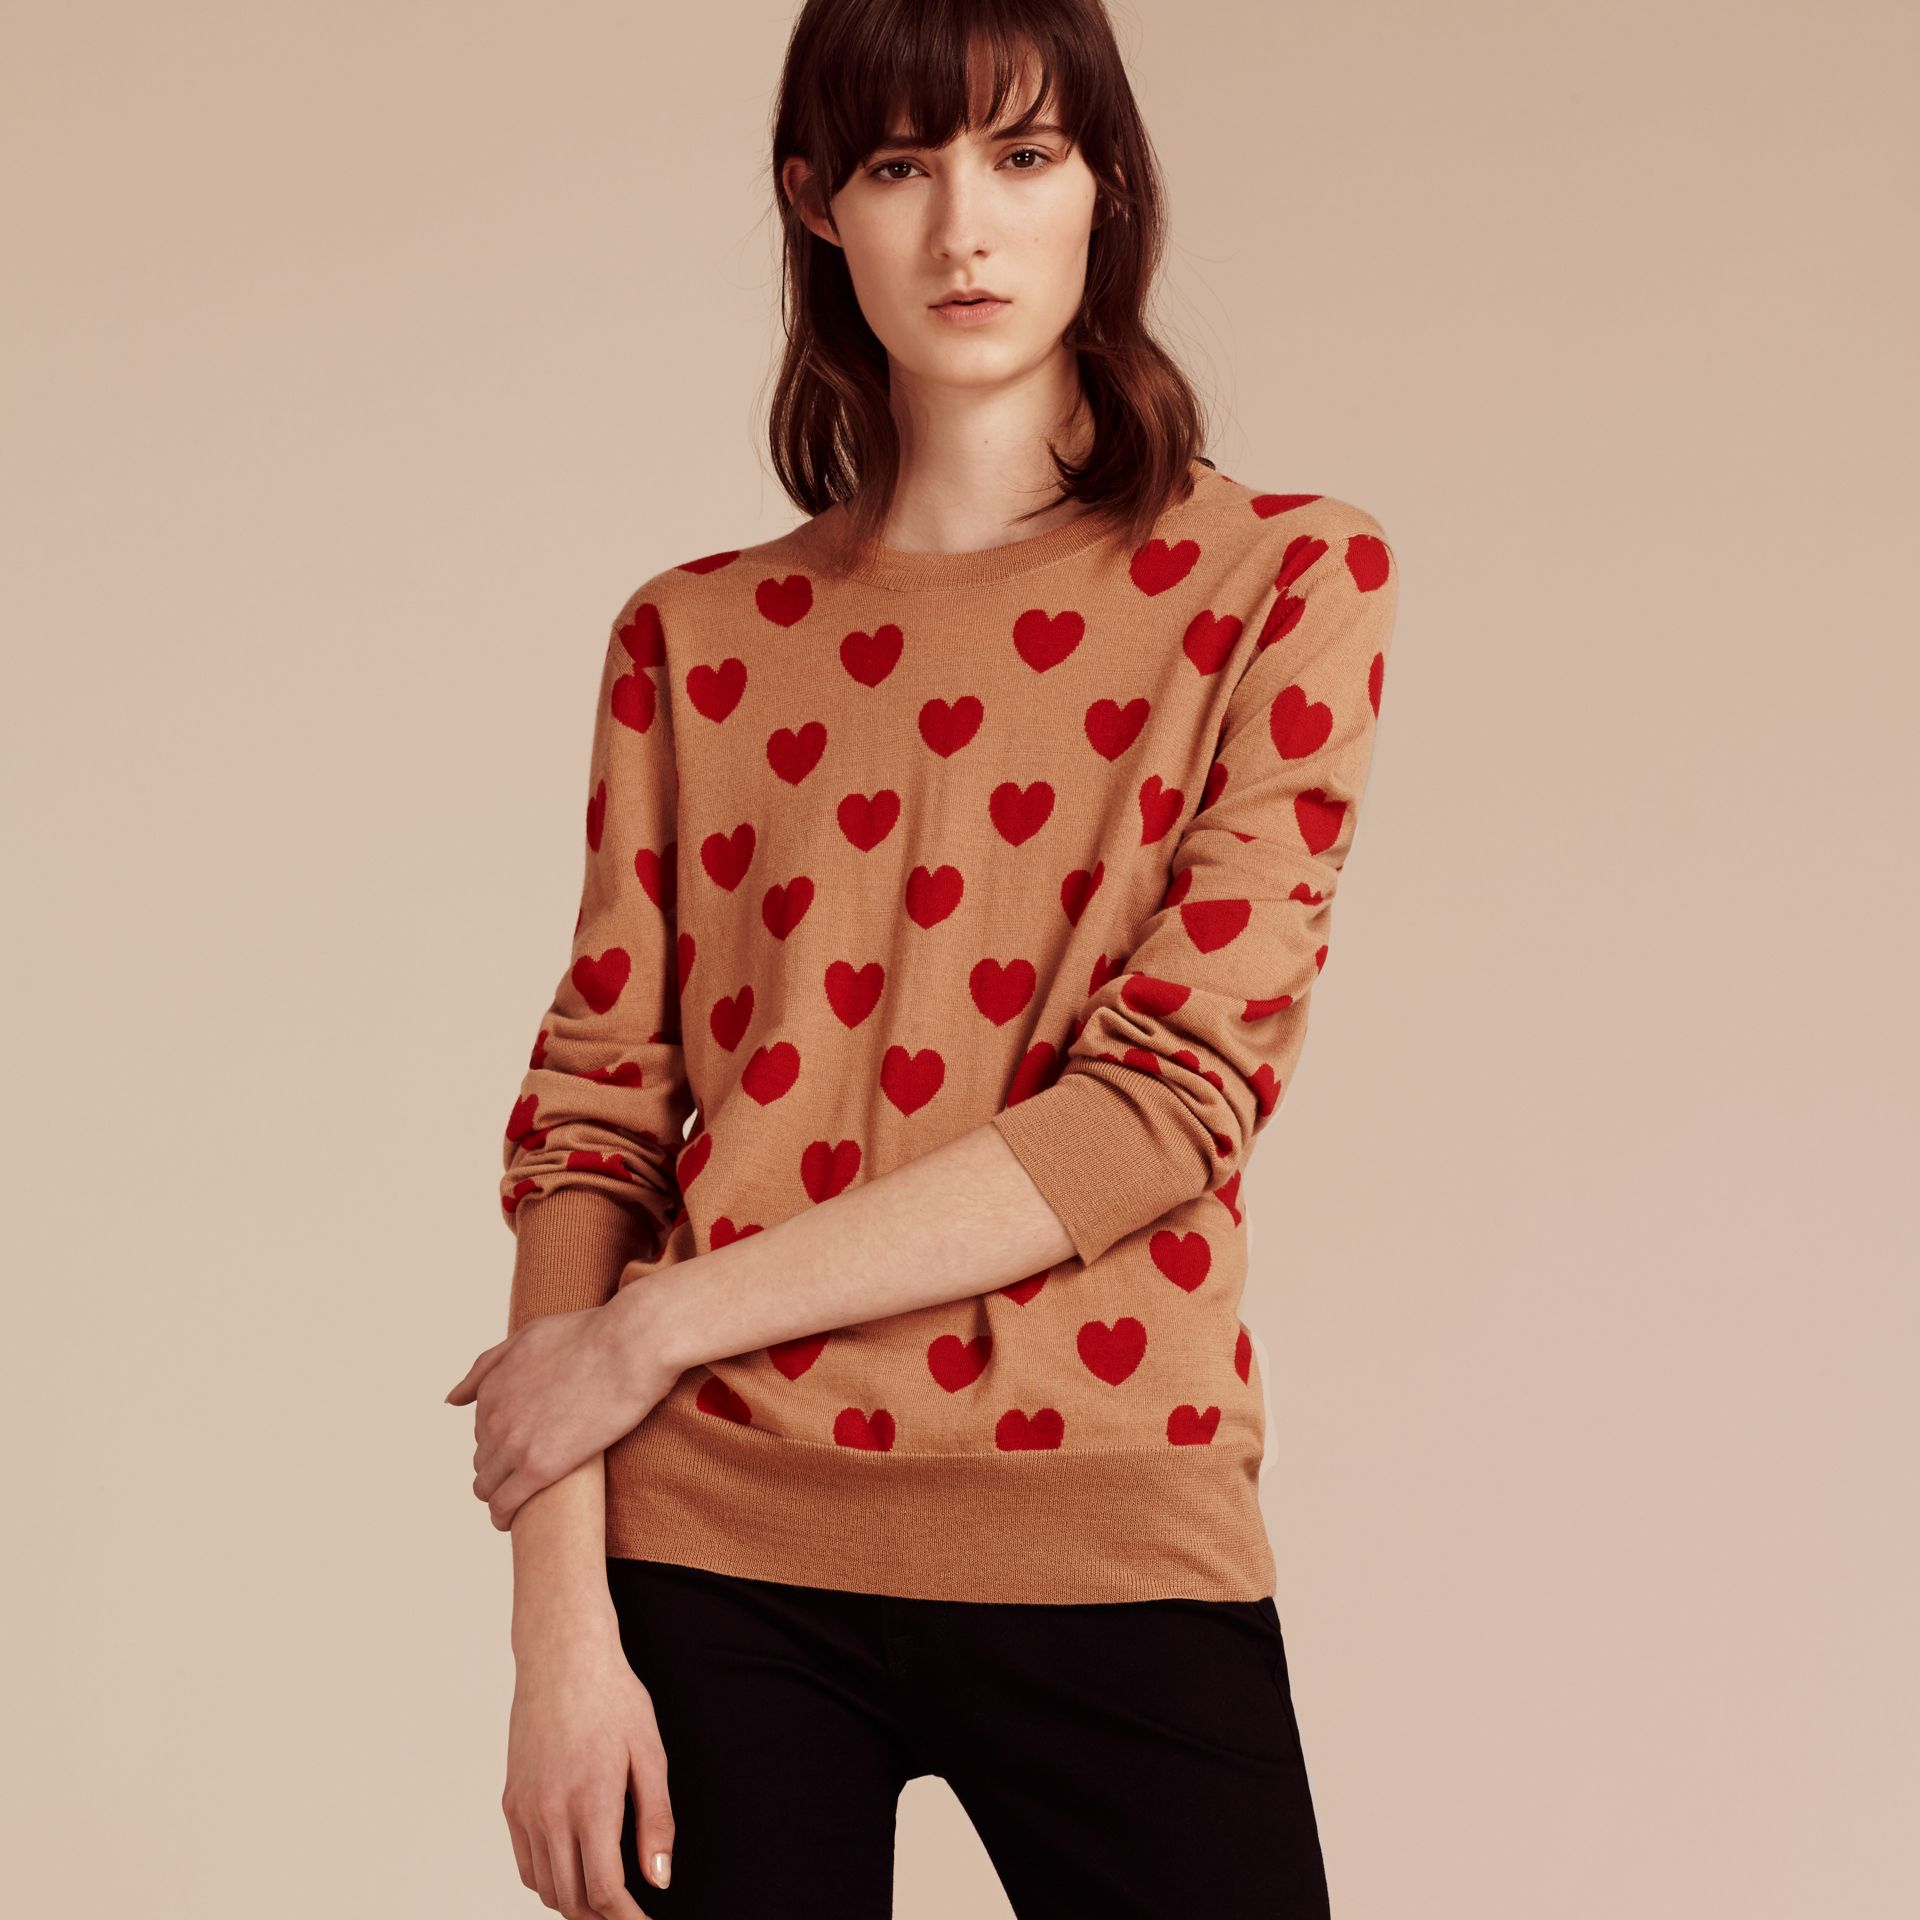 Heart Intarsia Merino Wool Sweater in Camel - Women | Burberry - gallery image 6